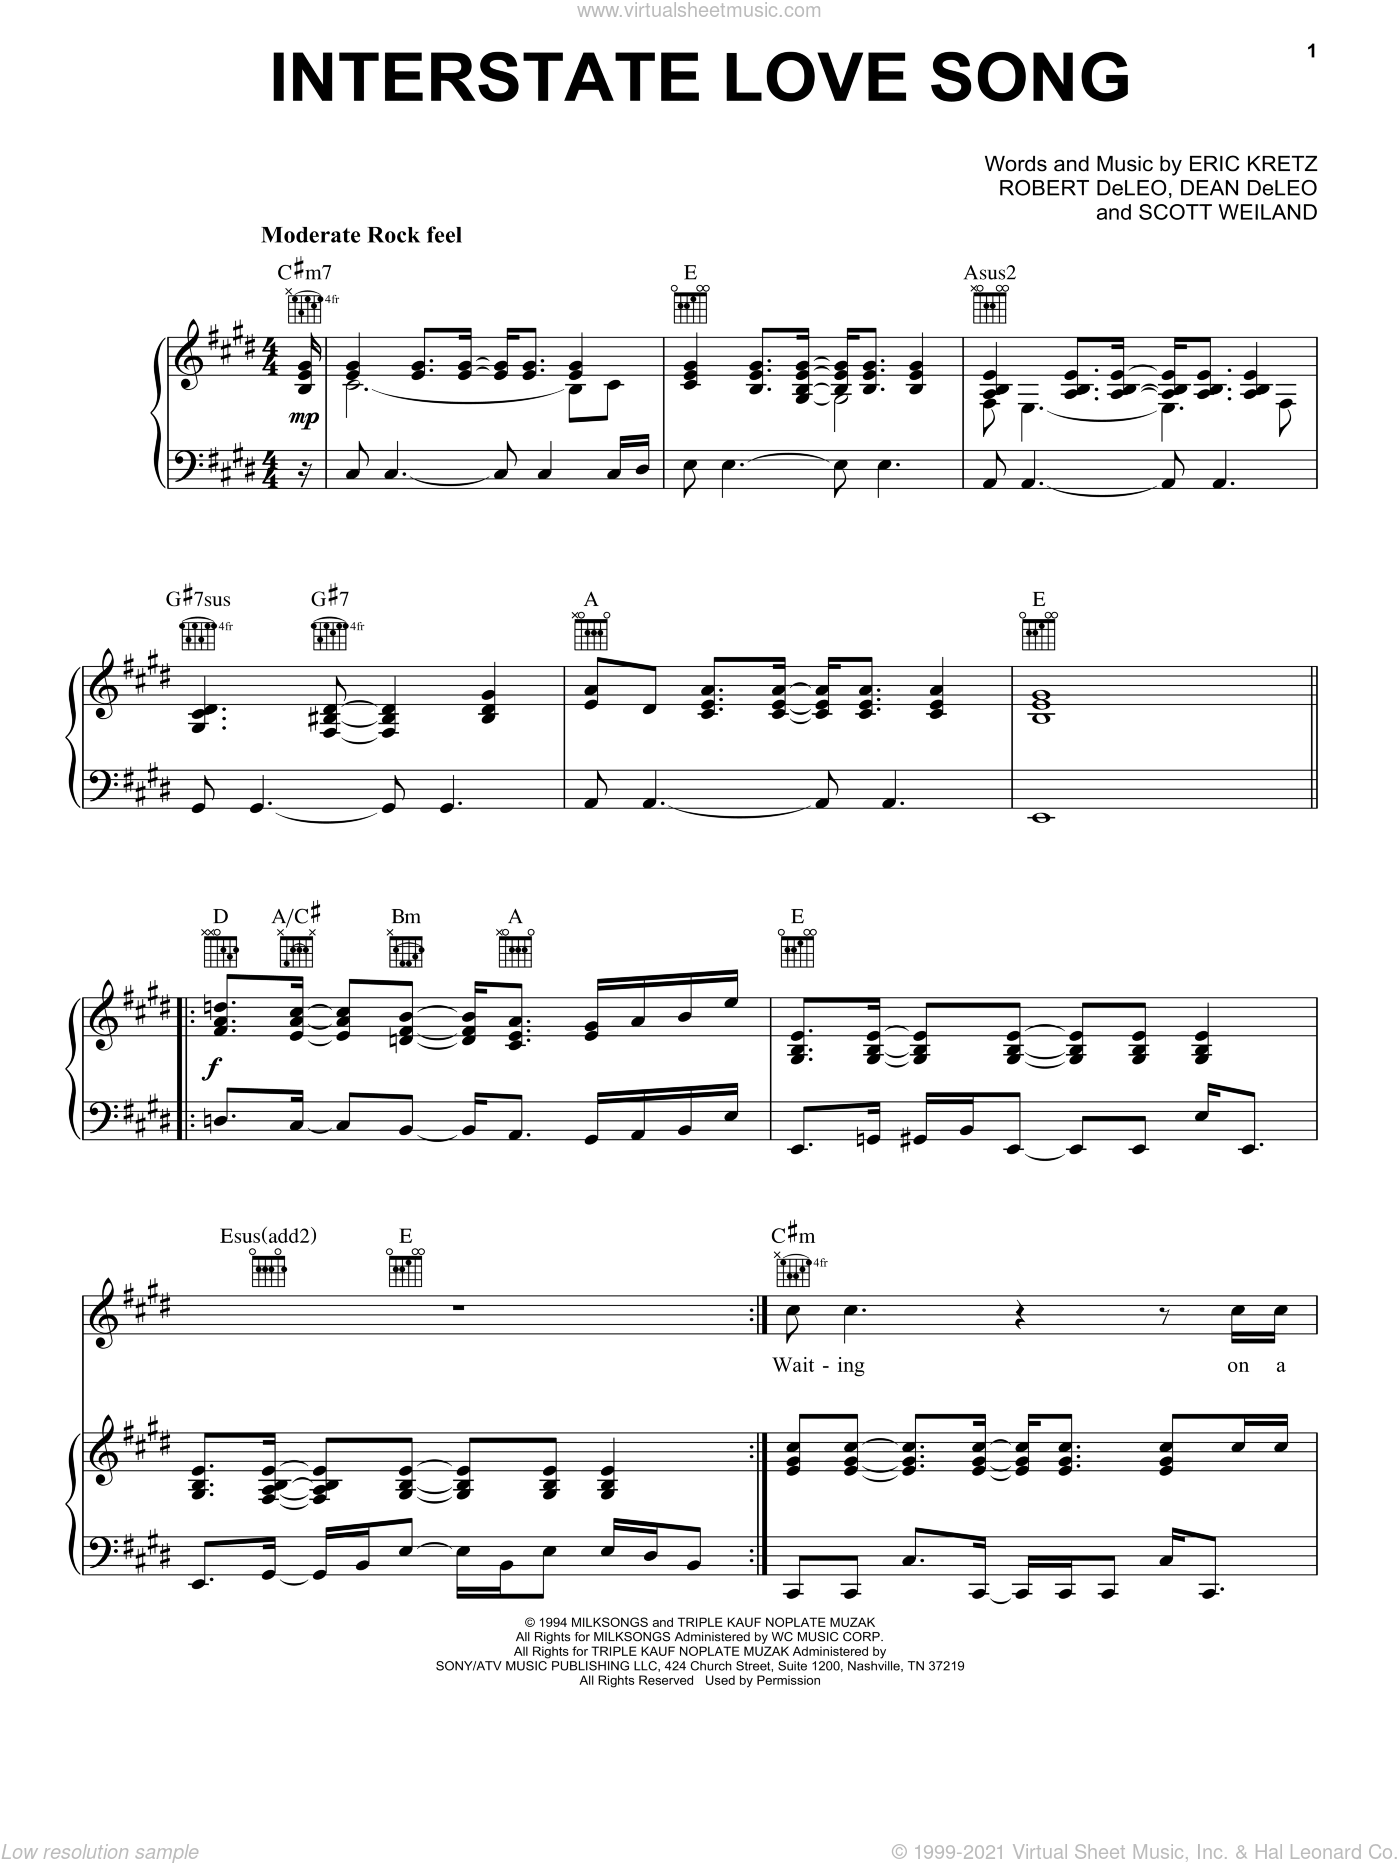 Interstate Love Song sheet music for voice, piano or guitar by Scott Weiland. Score Image Preview.